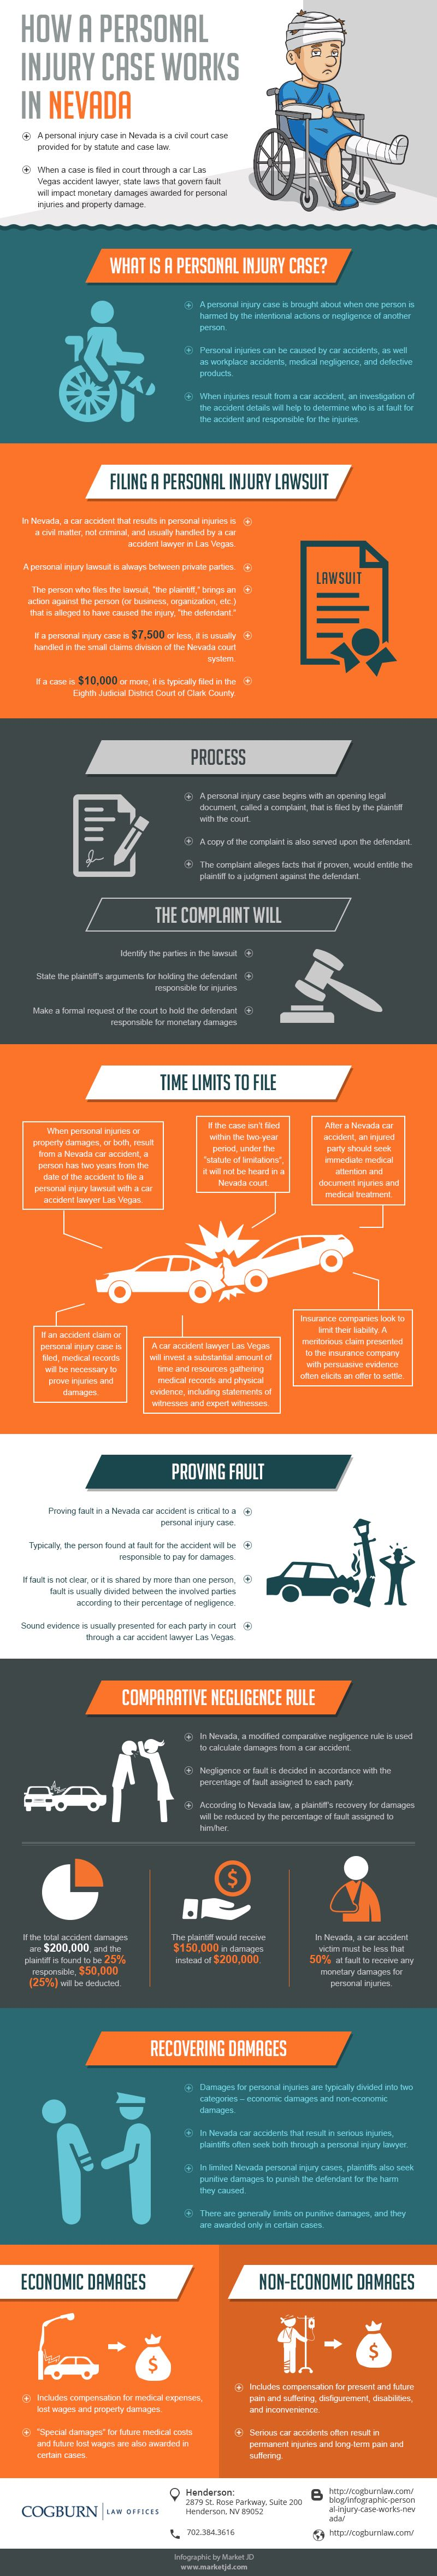 how personal injury cases work in Nevada [INFOGRAPHIC]